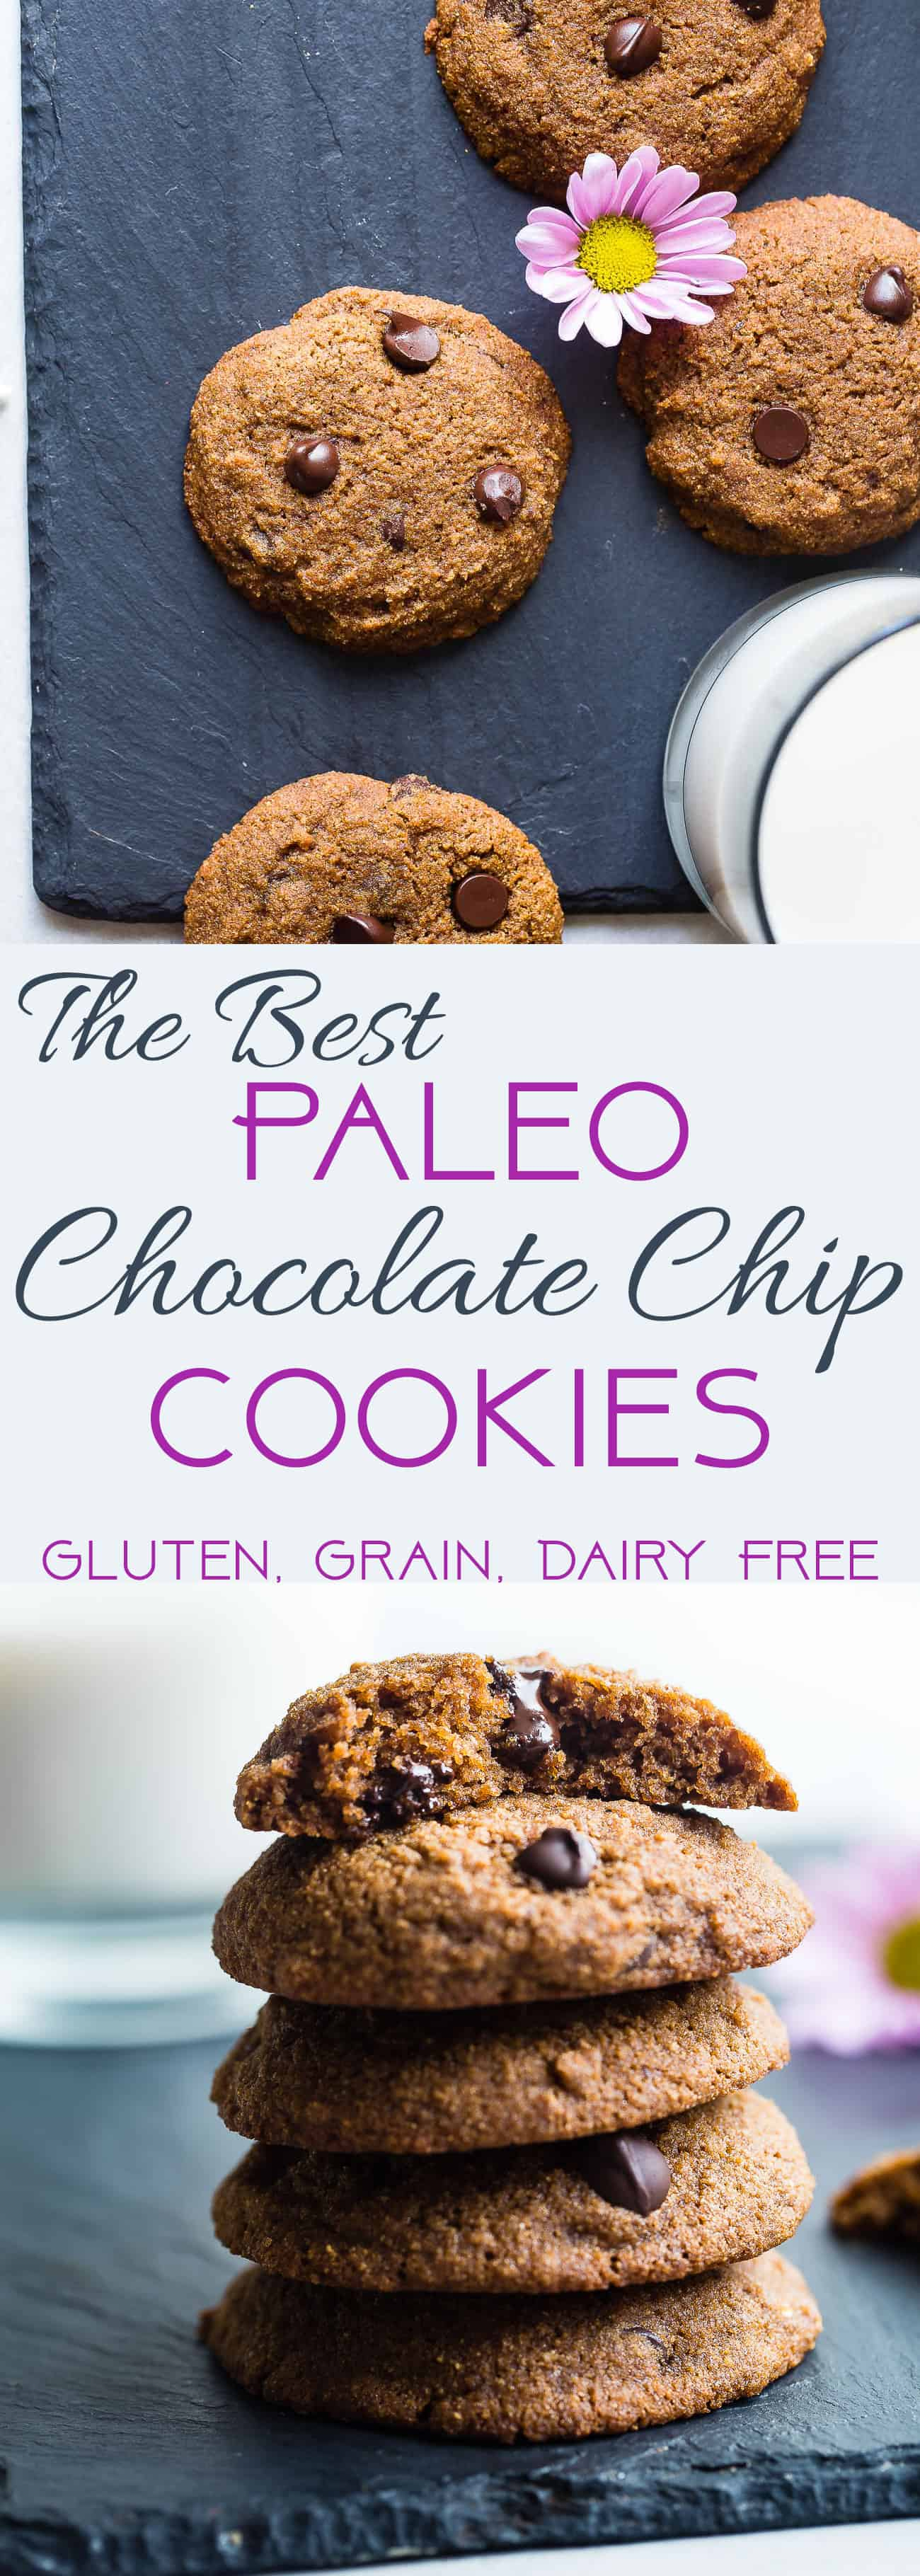 The Best Paleo Chocolate Chip Cookies - These EASY paleo friendly cookies are buttery, soft, chewy and SO rich and chocolaty! You won't believe they are gluten, grain and refined sugar free! | #Foodfaithfitness | #Paleo #Cookies #Glutenfree #ChocolateChip #GrainFree